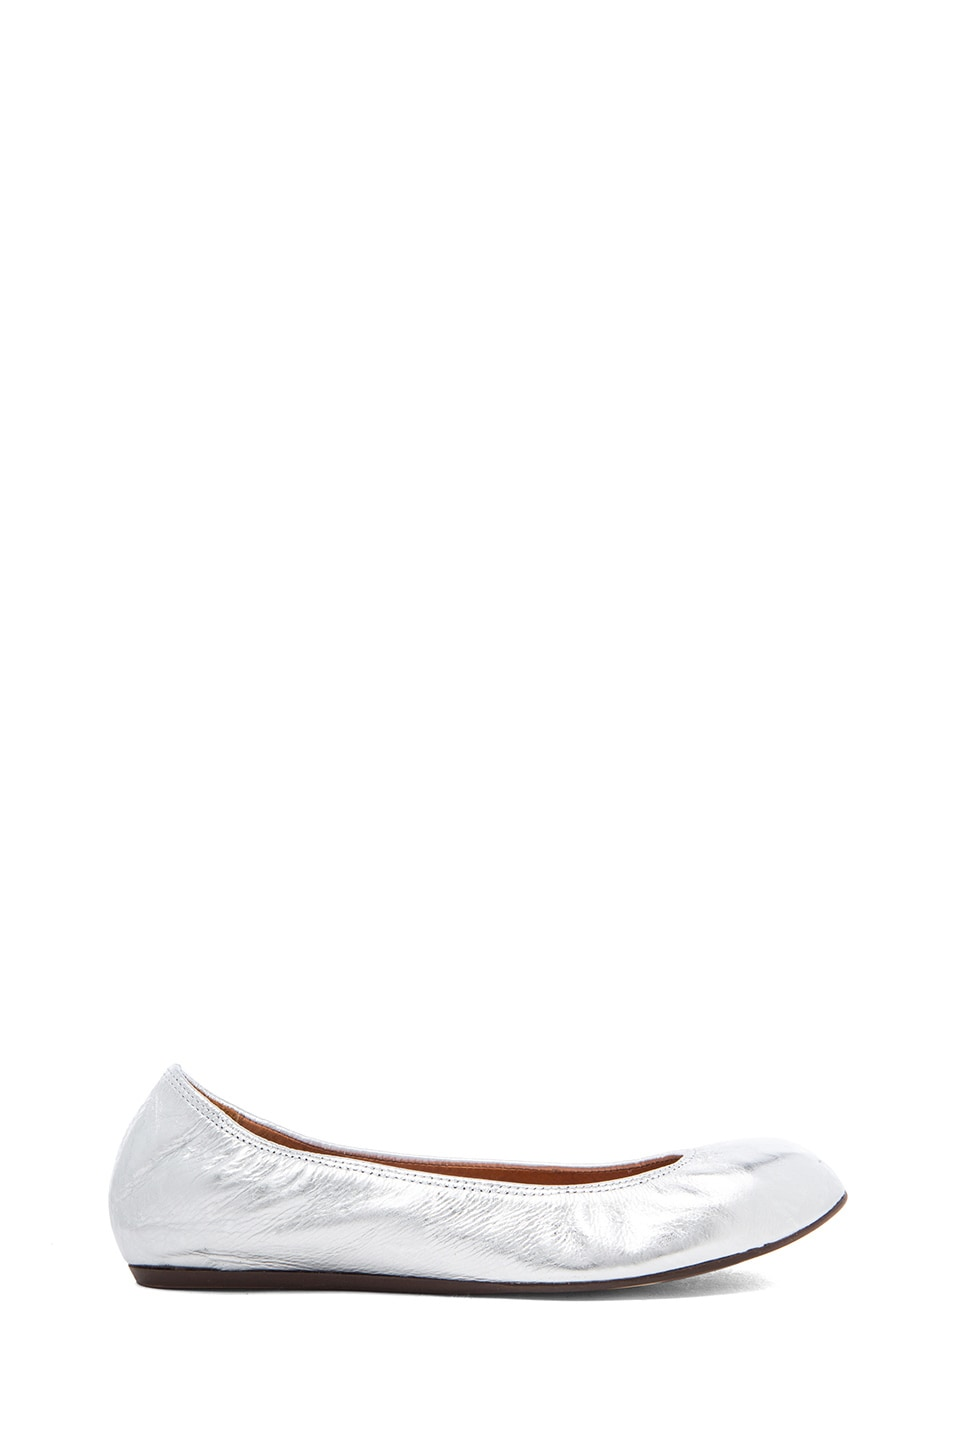 Image 1 of Lanvin Cracked Calfskin Ballerina Flats in Silver